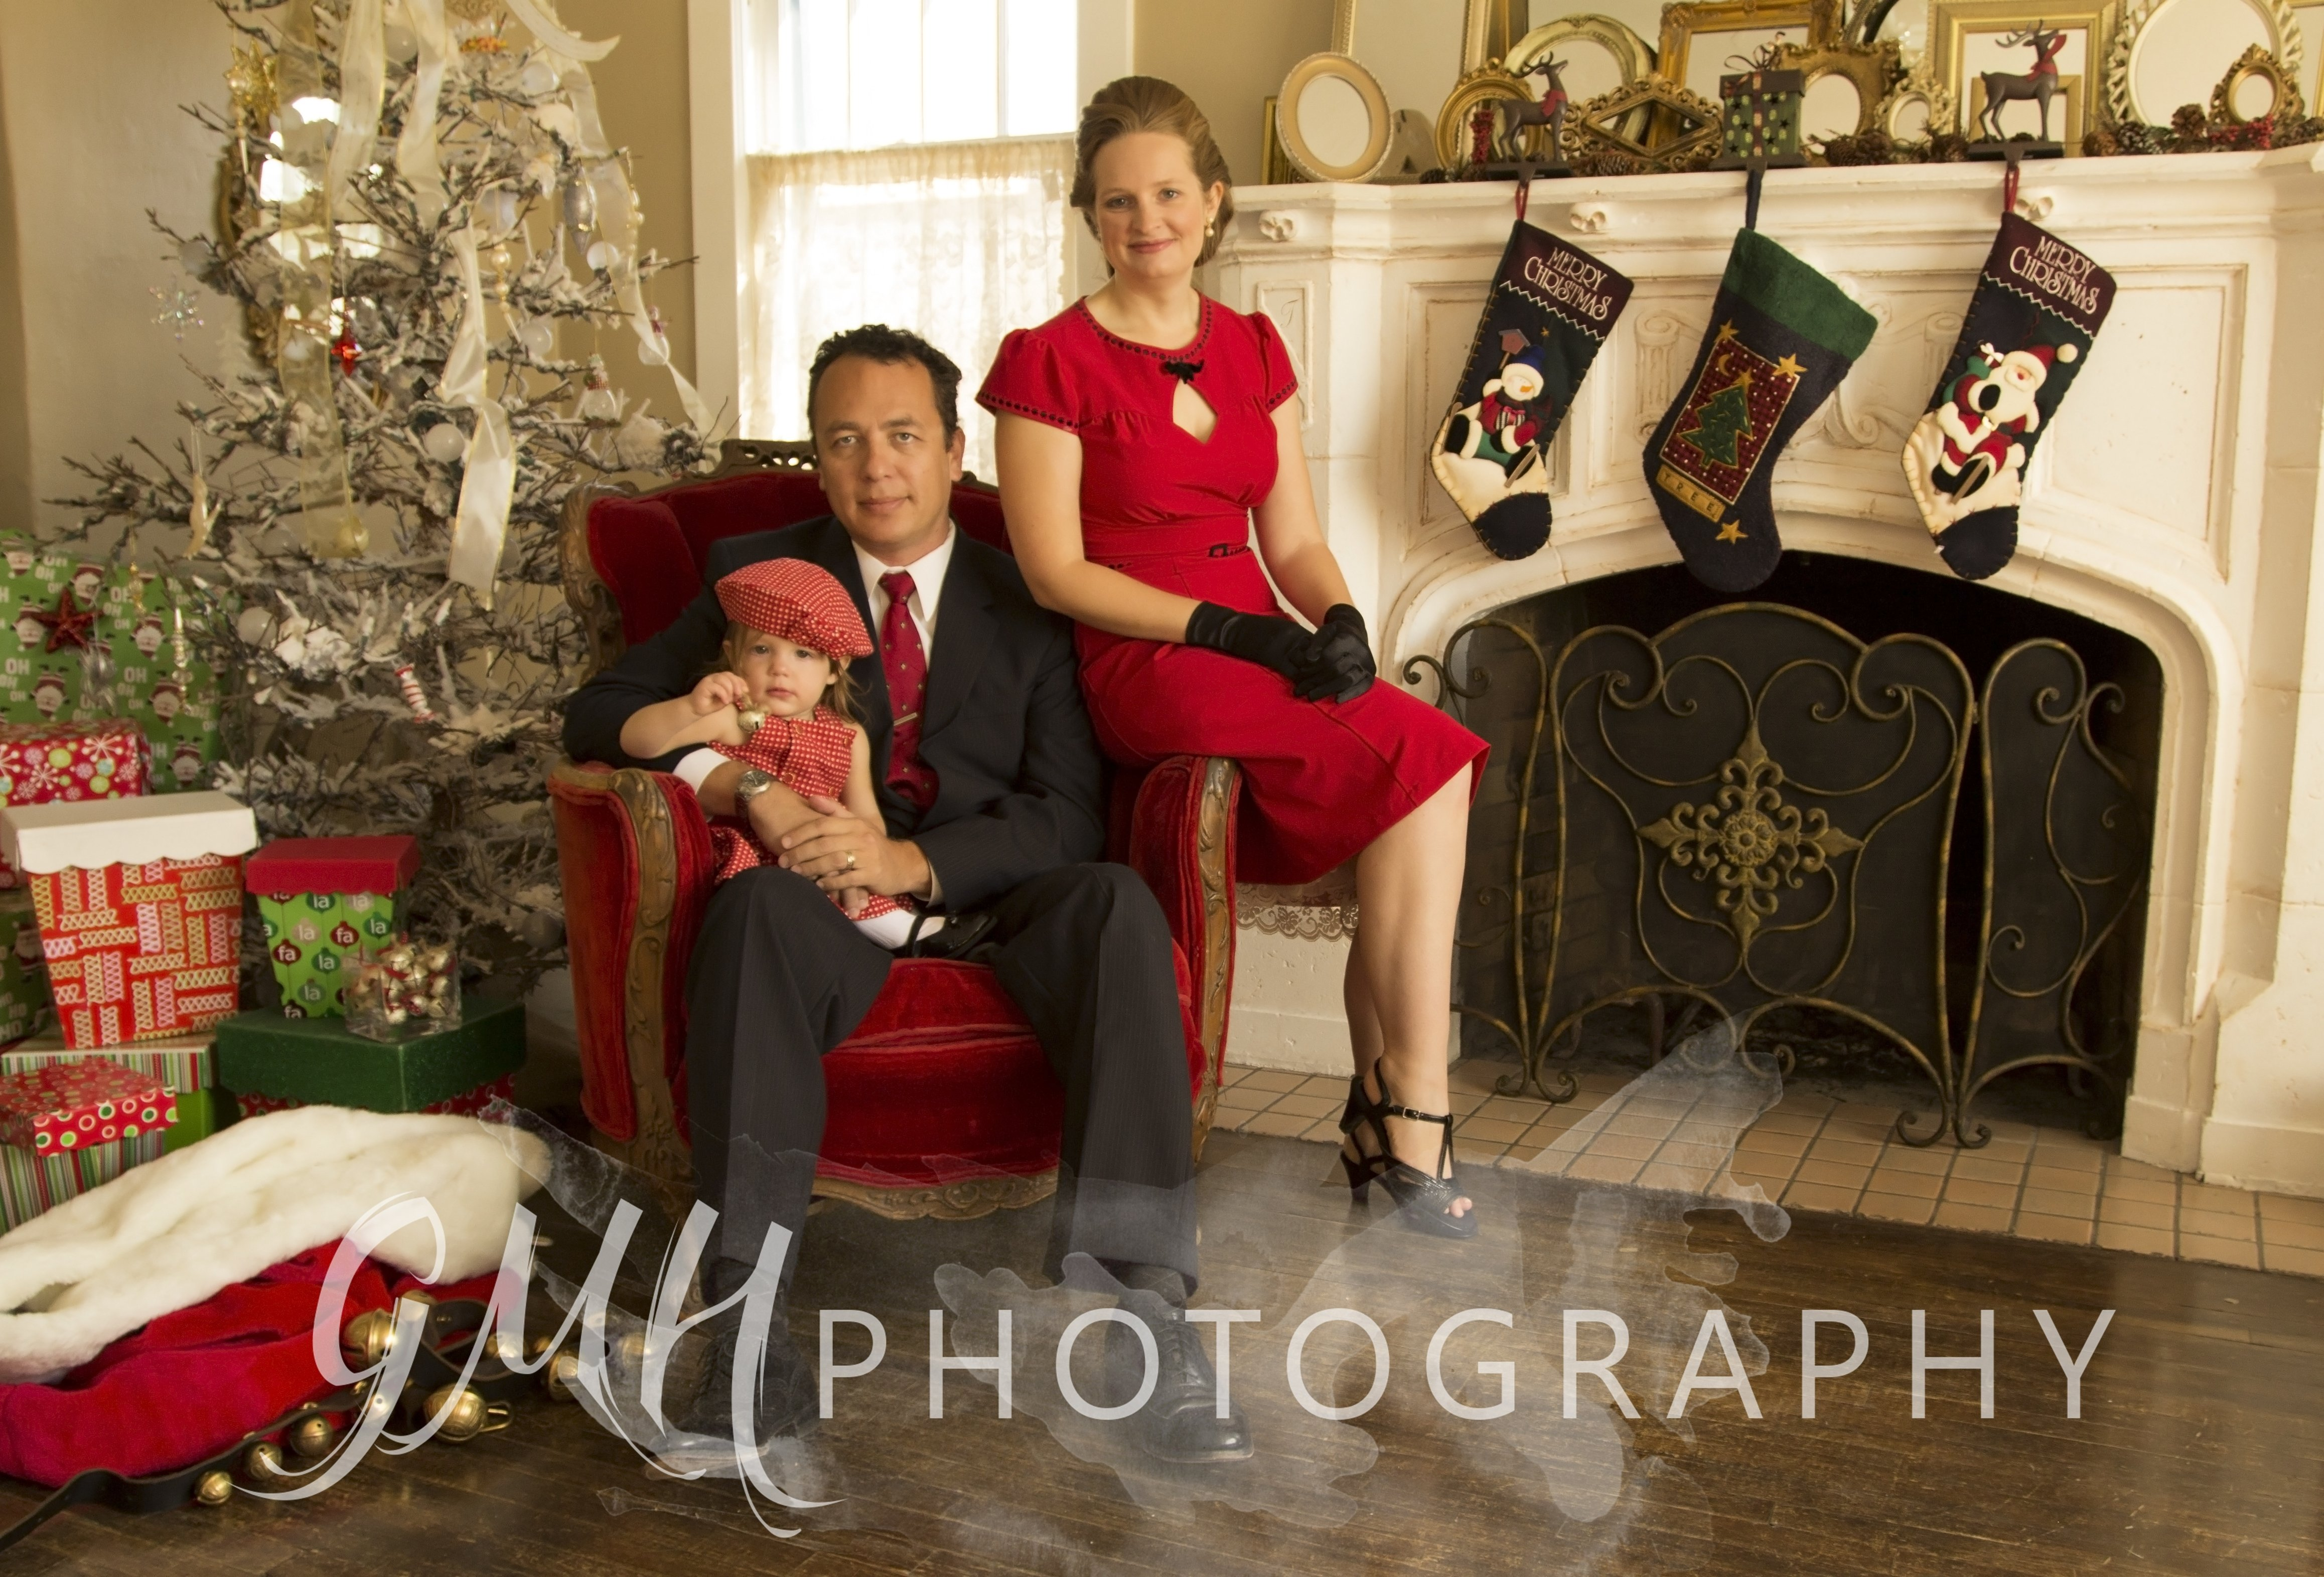 10 Ideal Christmas Picture Ideas For Family 7 vintage family christmas photo ideas 2021